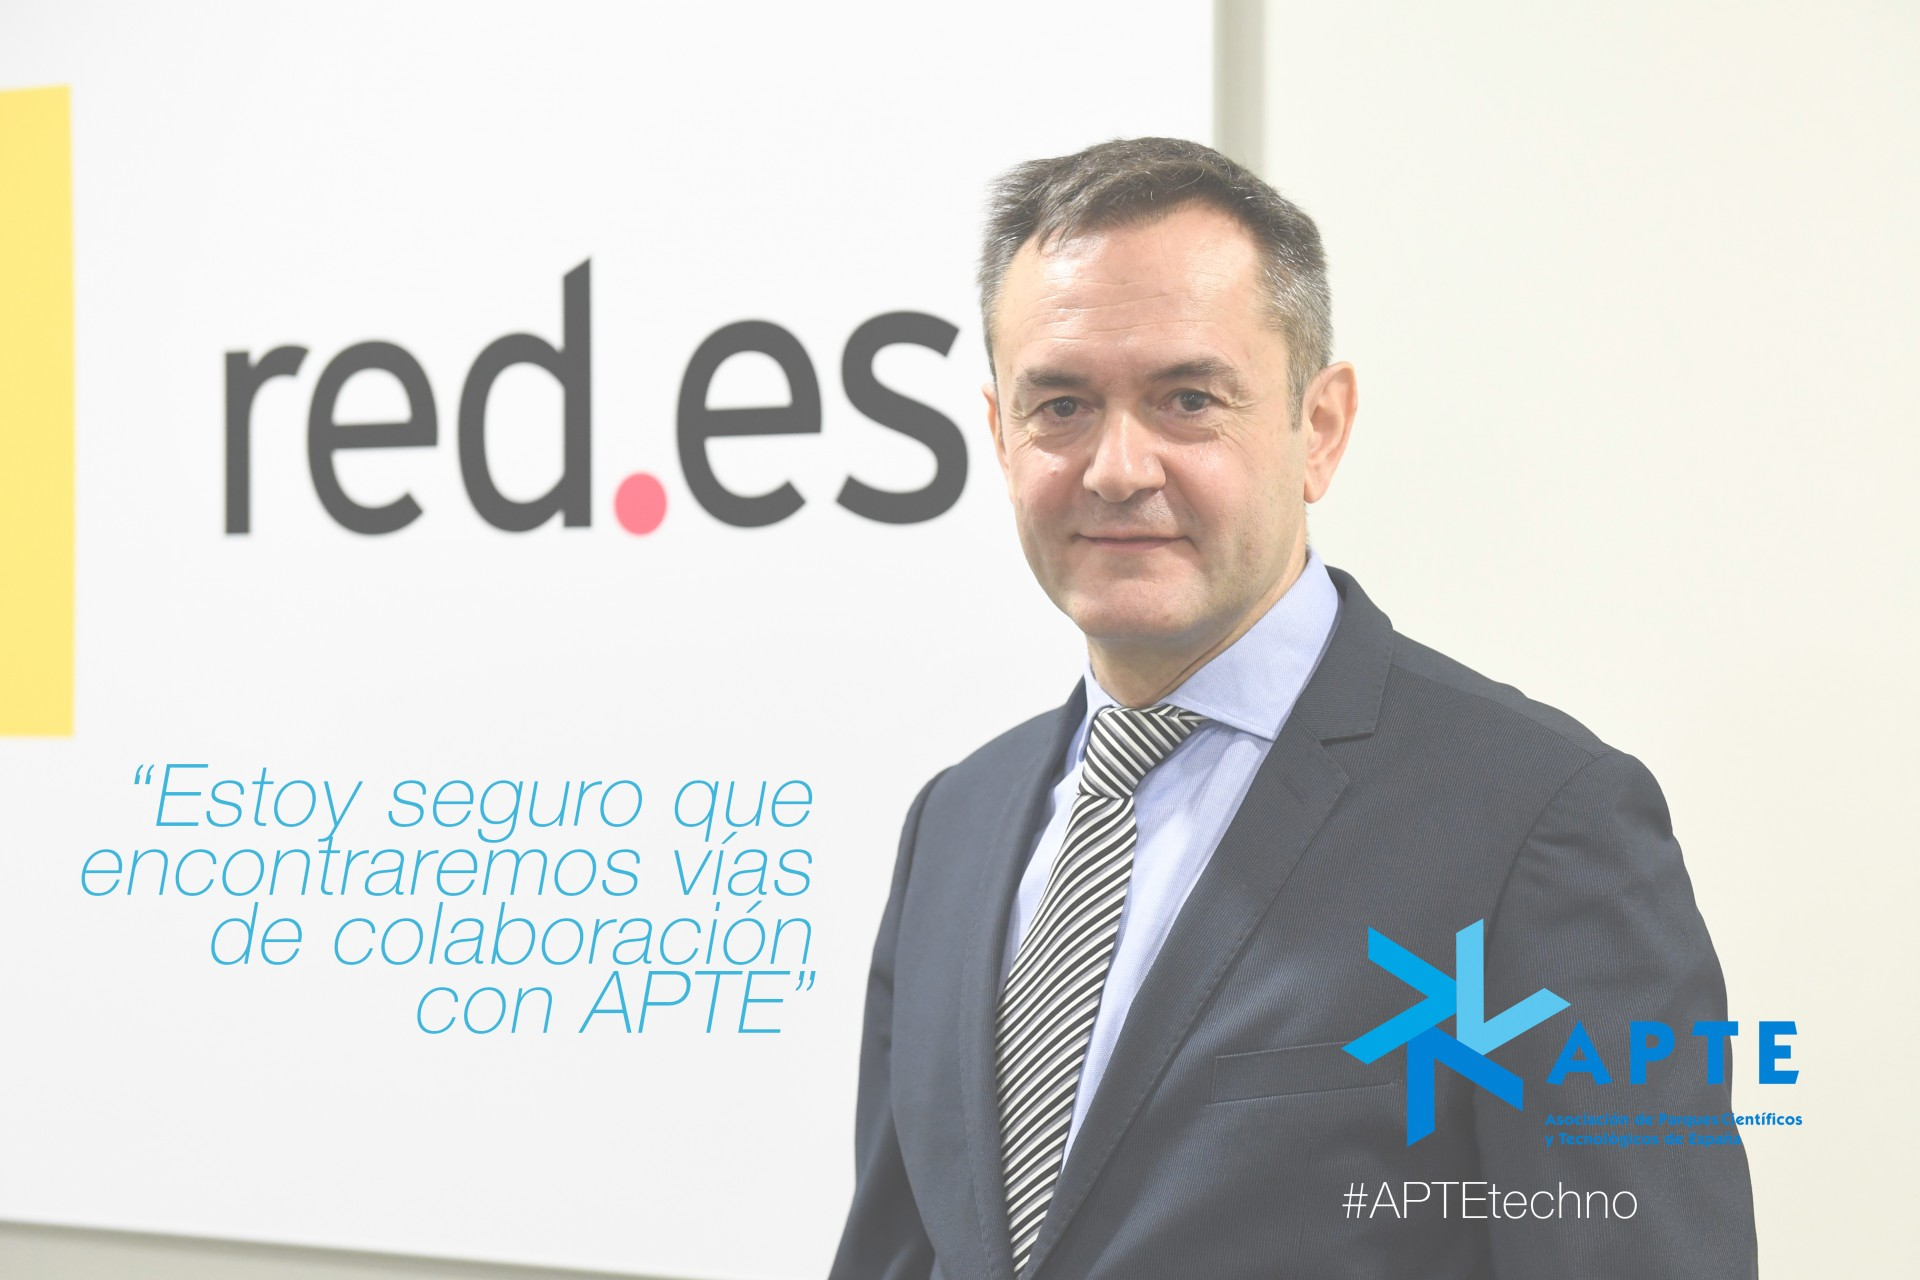 Hablamos con Jose Manuel Leceta, Director General de RED.es